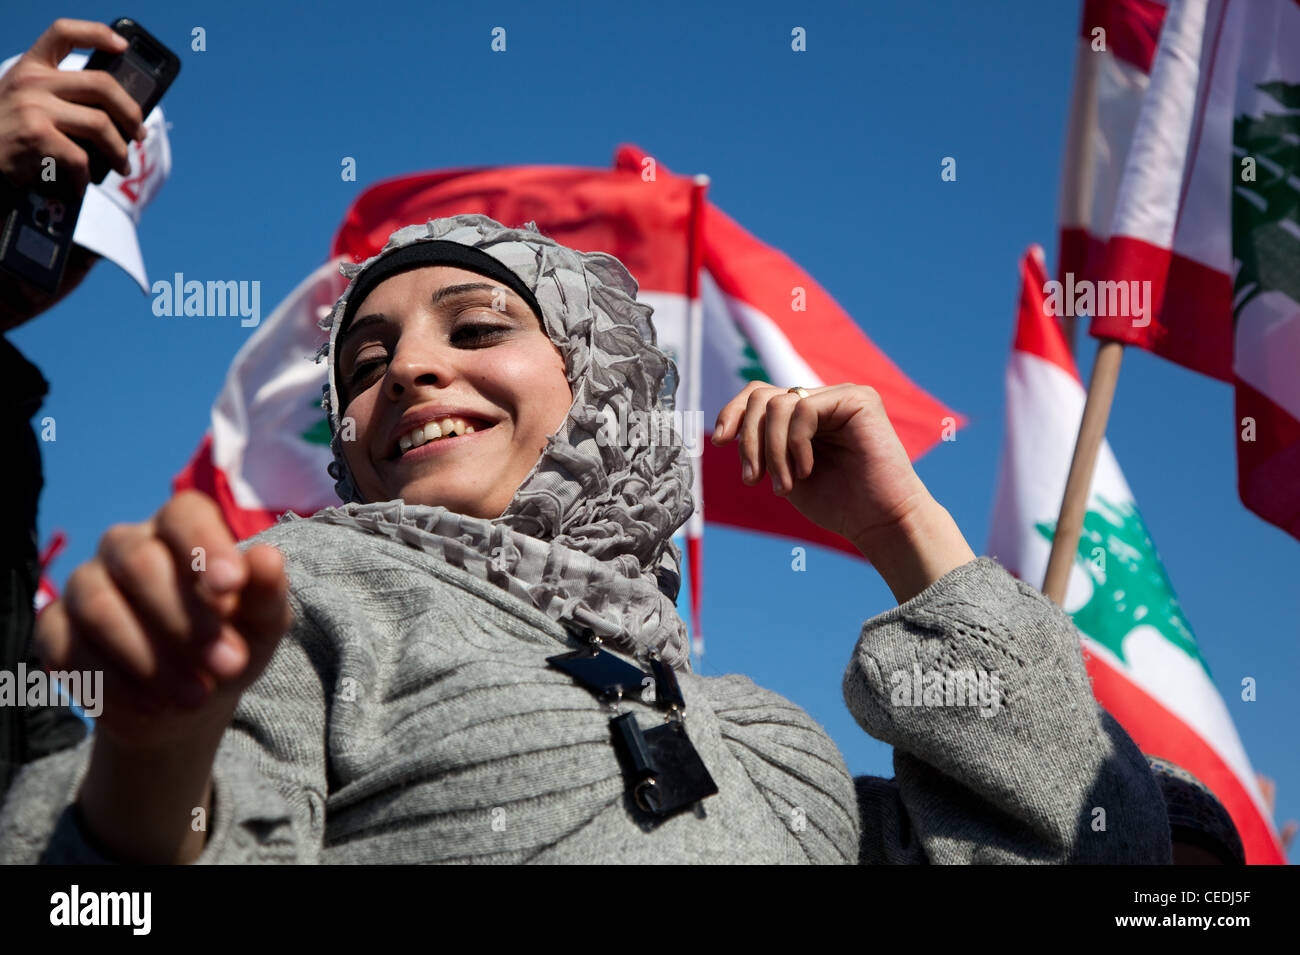 Young woman in stylish headscarf smiles and dances in close-up at a political rally in Martyrs Square, Beirut, Lebanon. - Stock Image